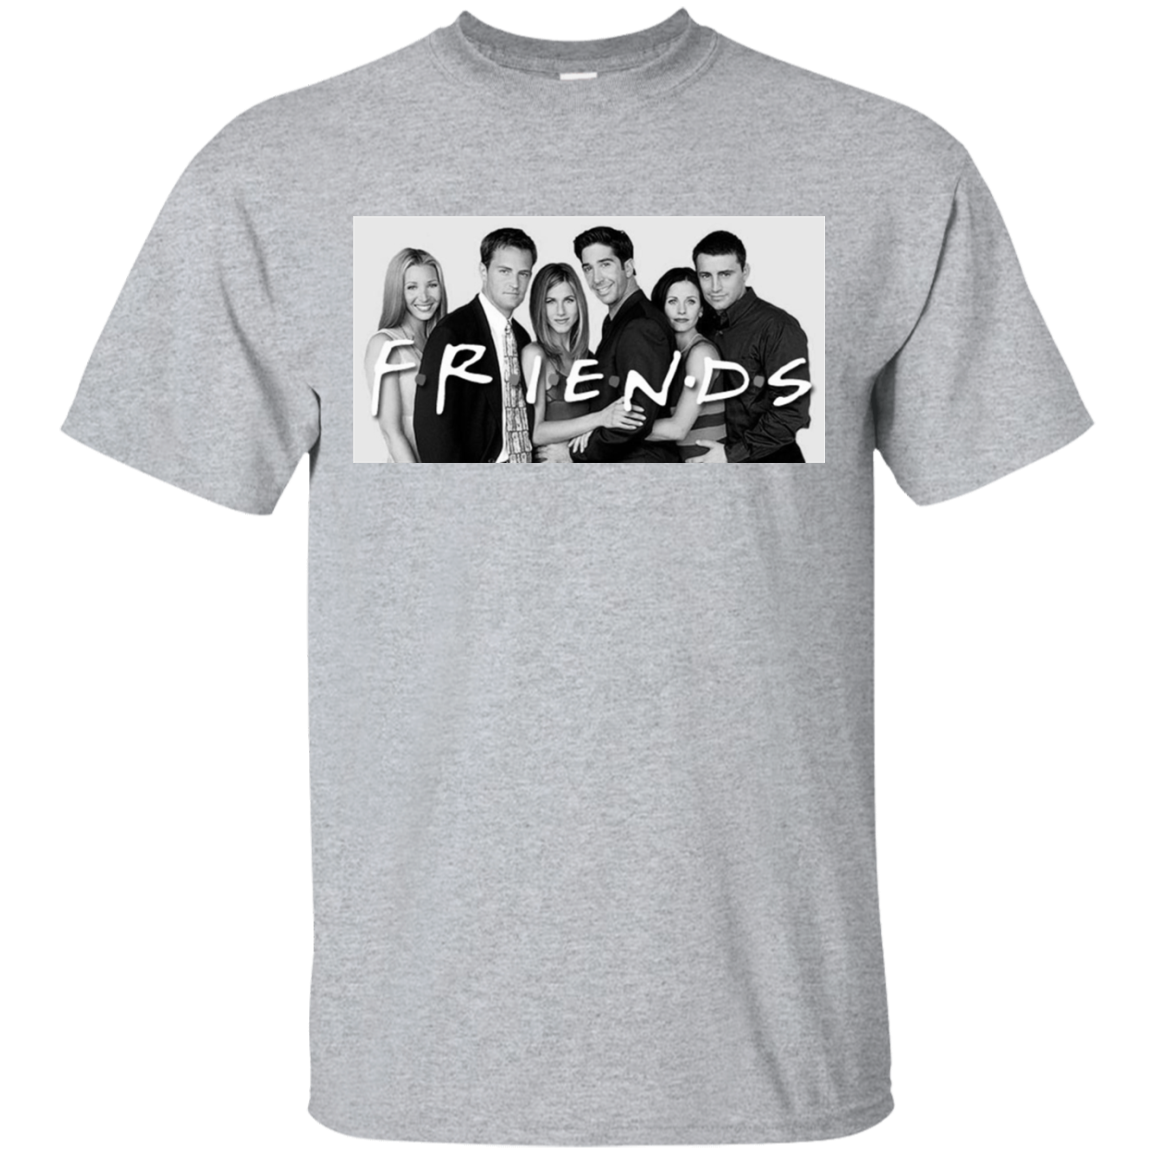 41b7ad915 Friends TV Show - Cast Classy T-Shirt – NewMeup